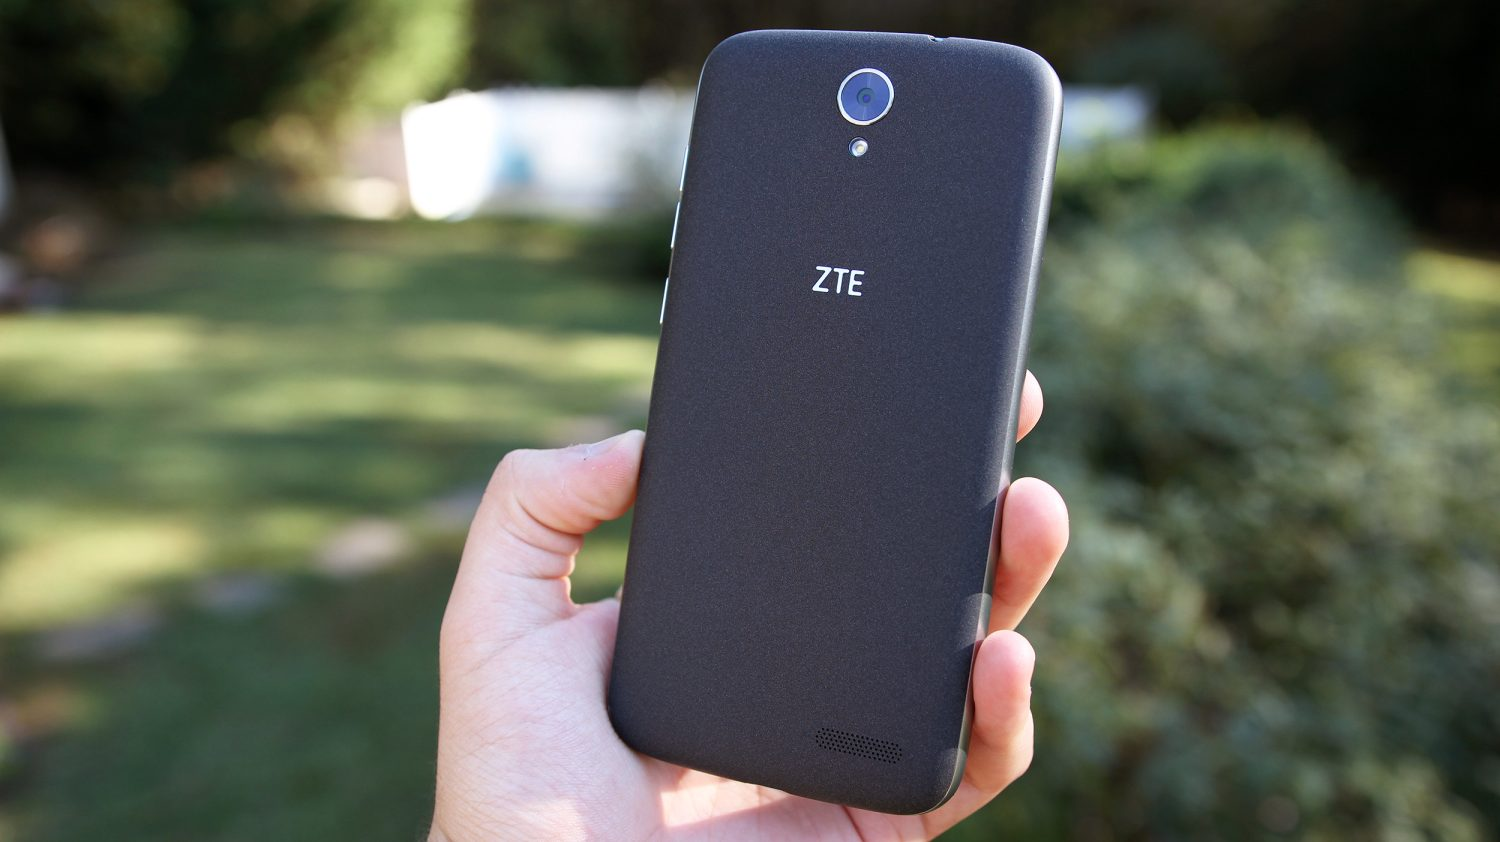 zte-self-adhesive-phone-anouncement